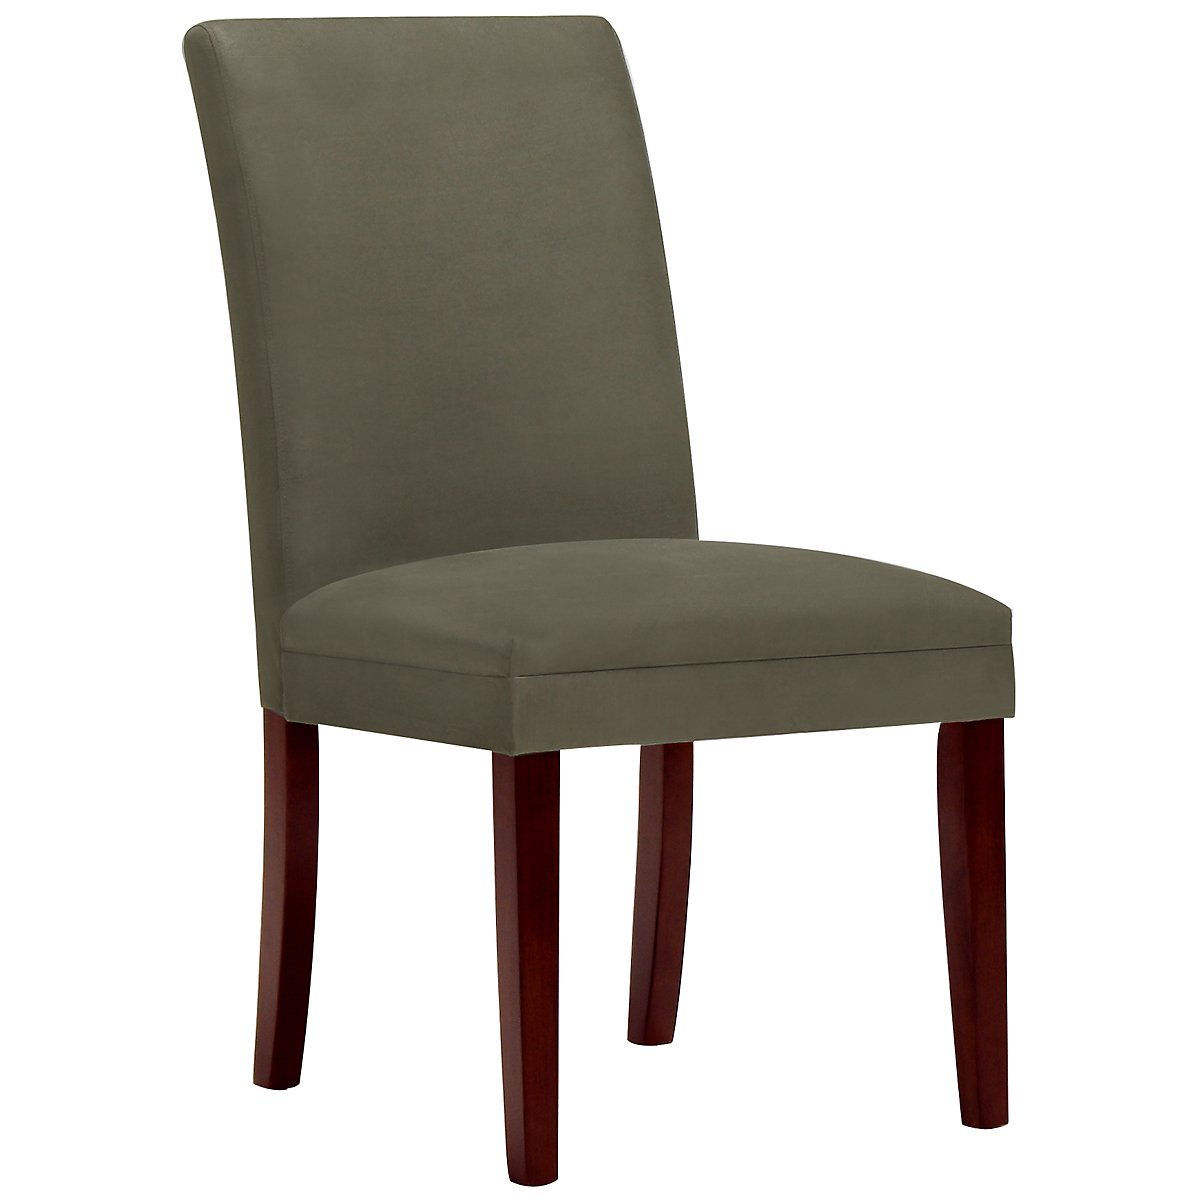 Park Dk Green Microfiber Upholstered Side Chair